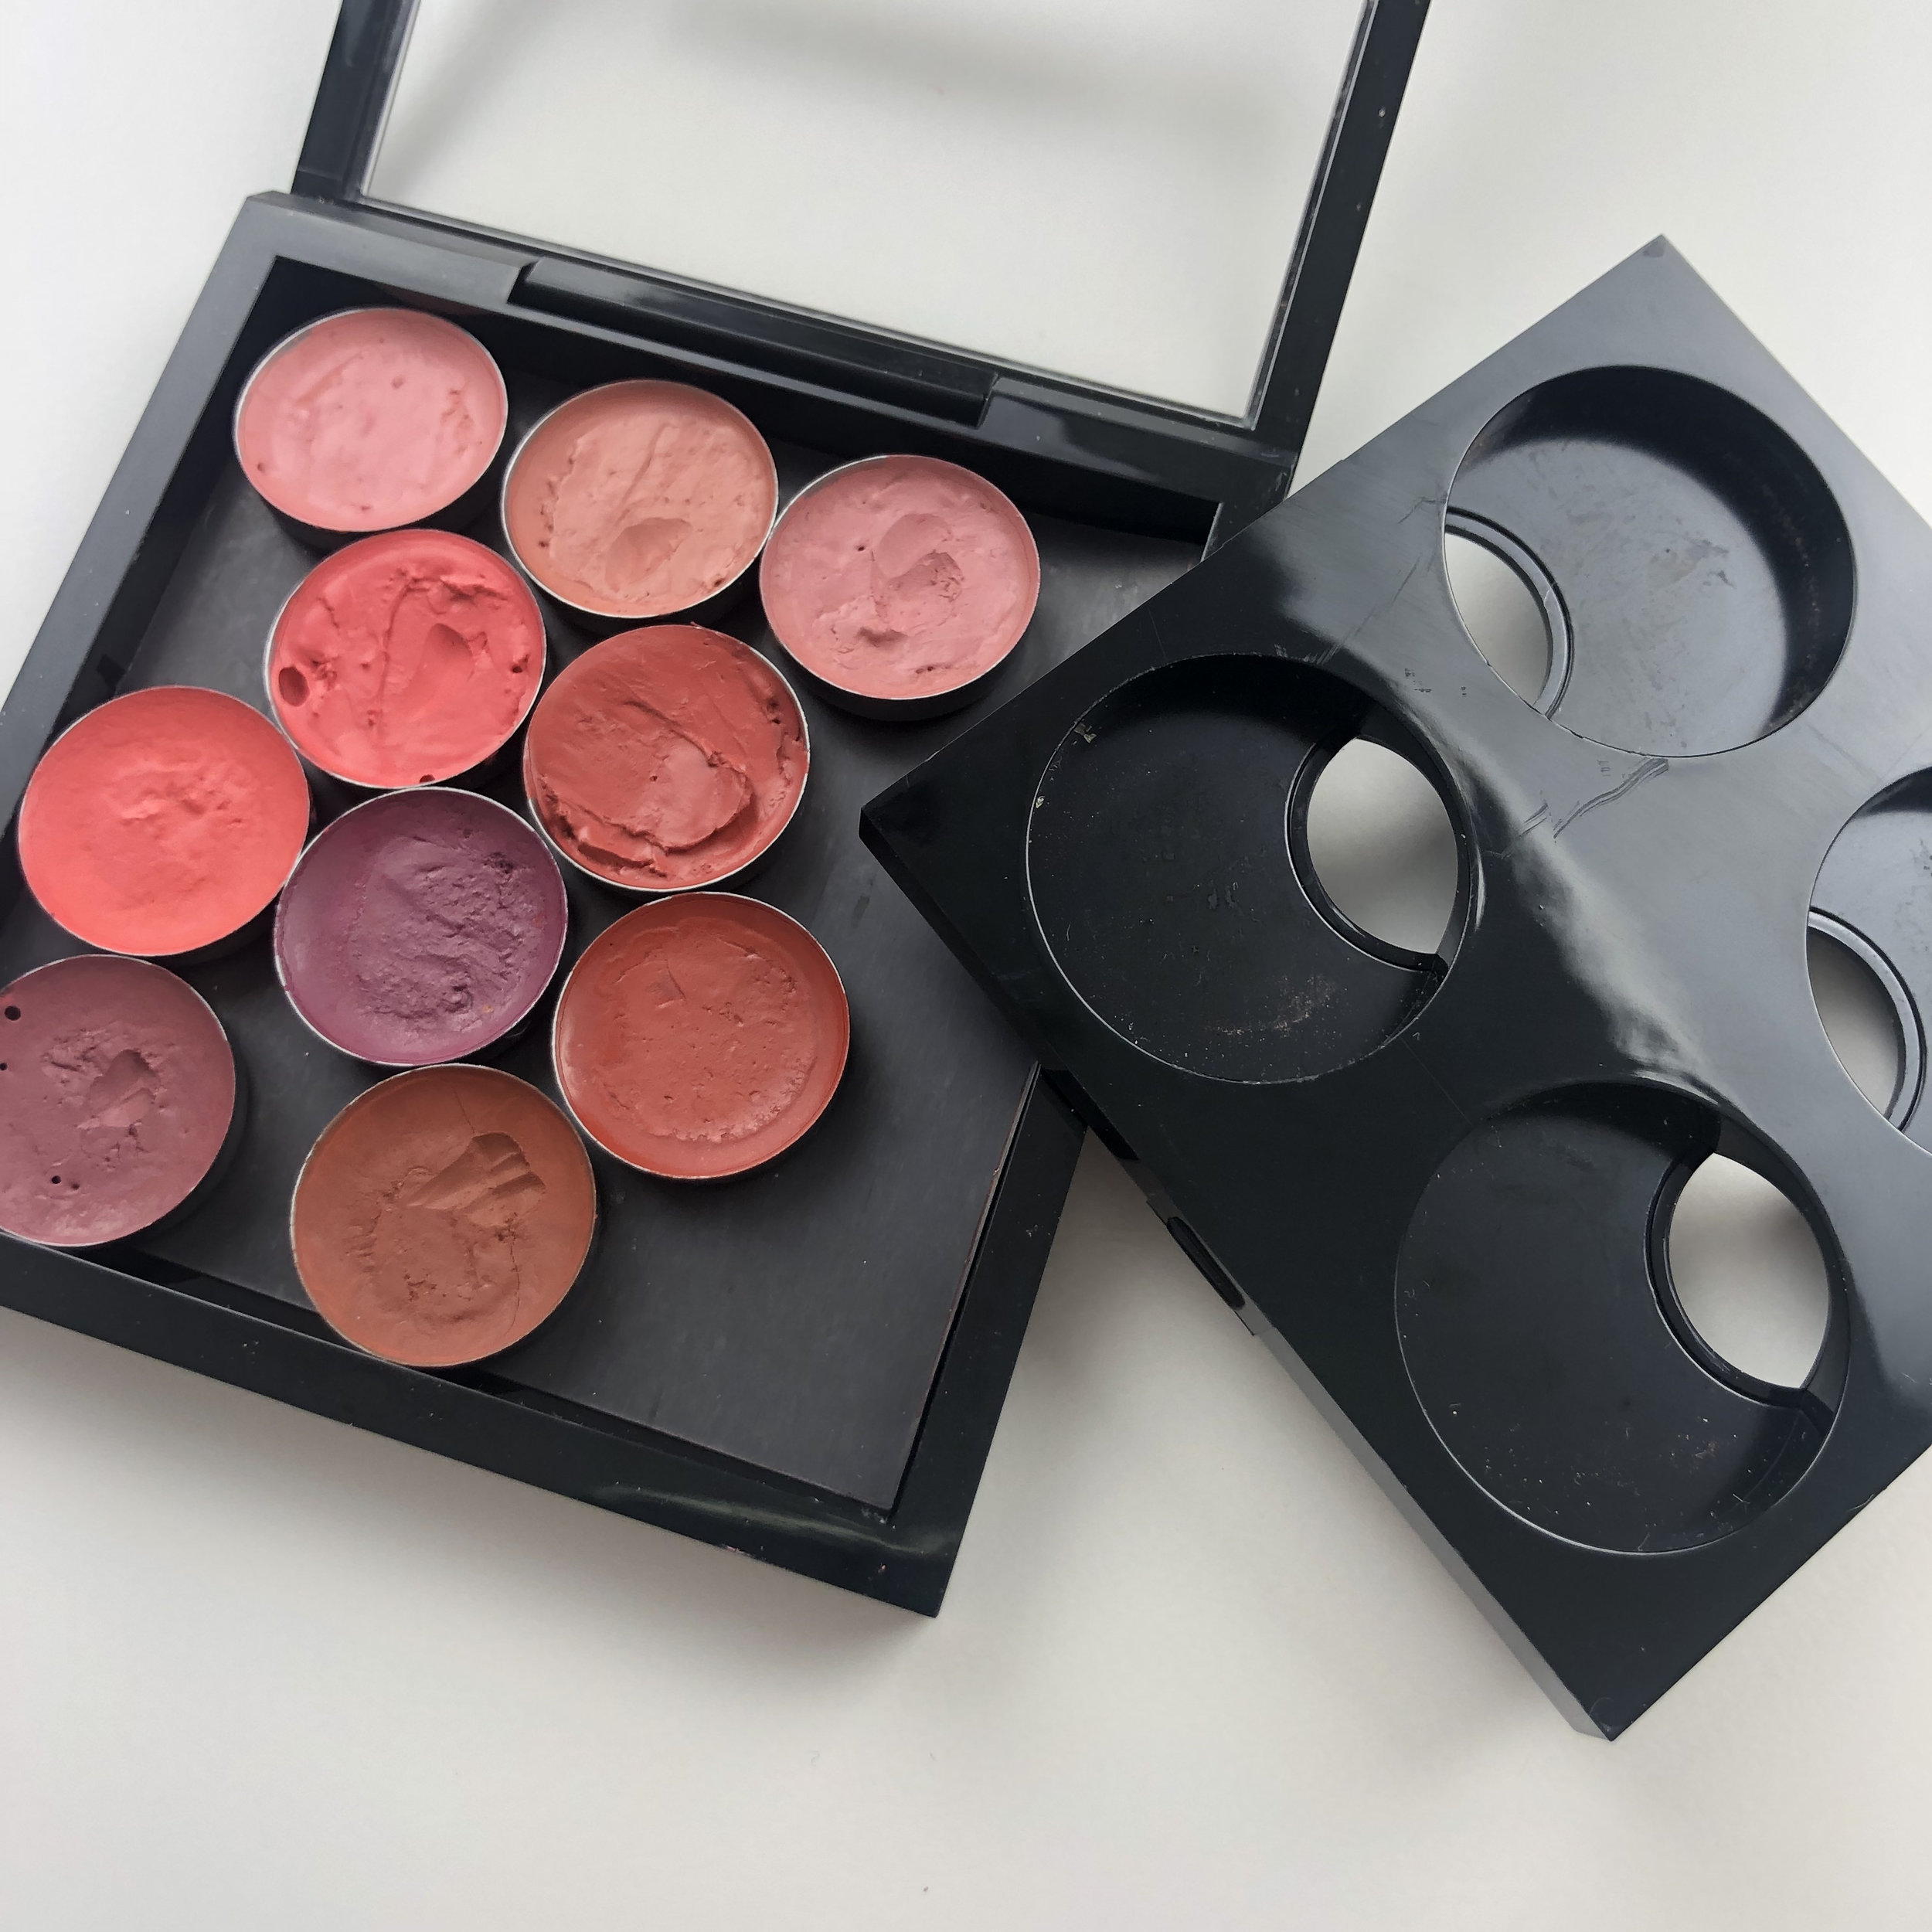 I removed the old insert and replaced it with just the self adhesive magnetic sheet and my RCMA cream blushes in the Z-Palette mini round makeup pans.